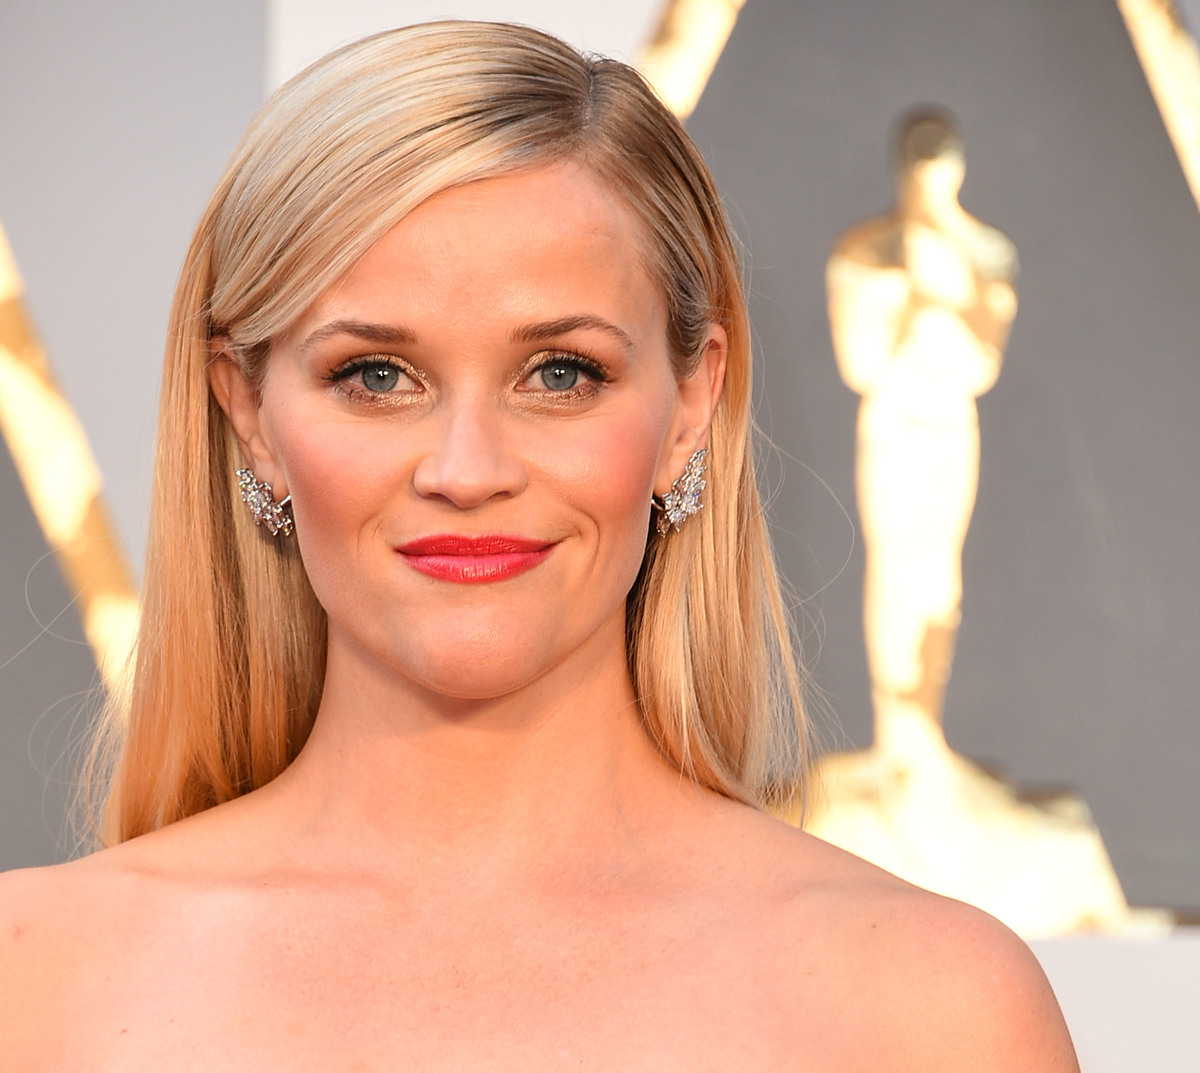 Reese Witherspoon is an example of a heart-shaped face